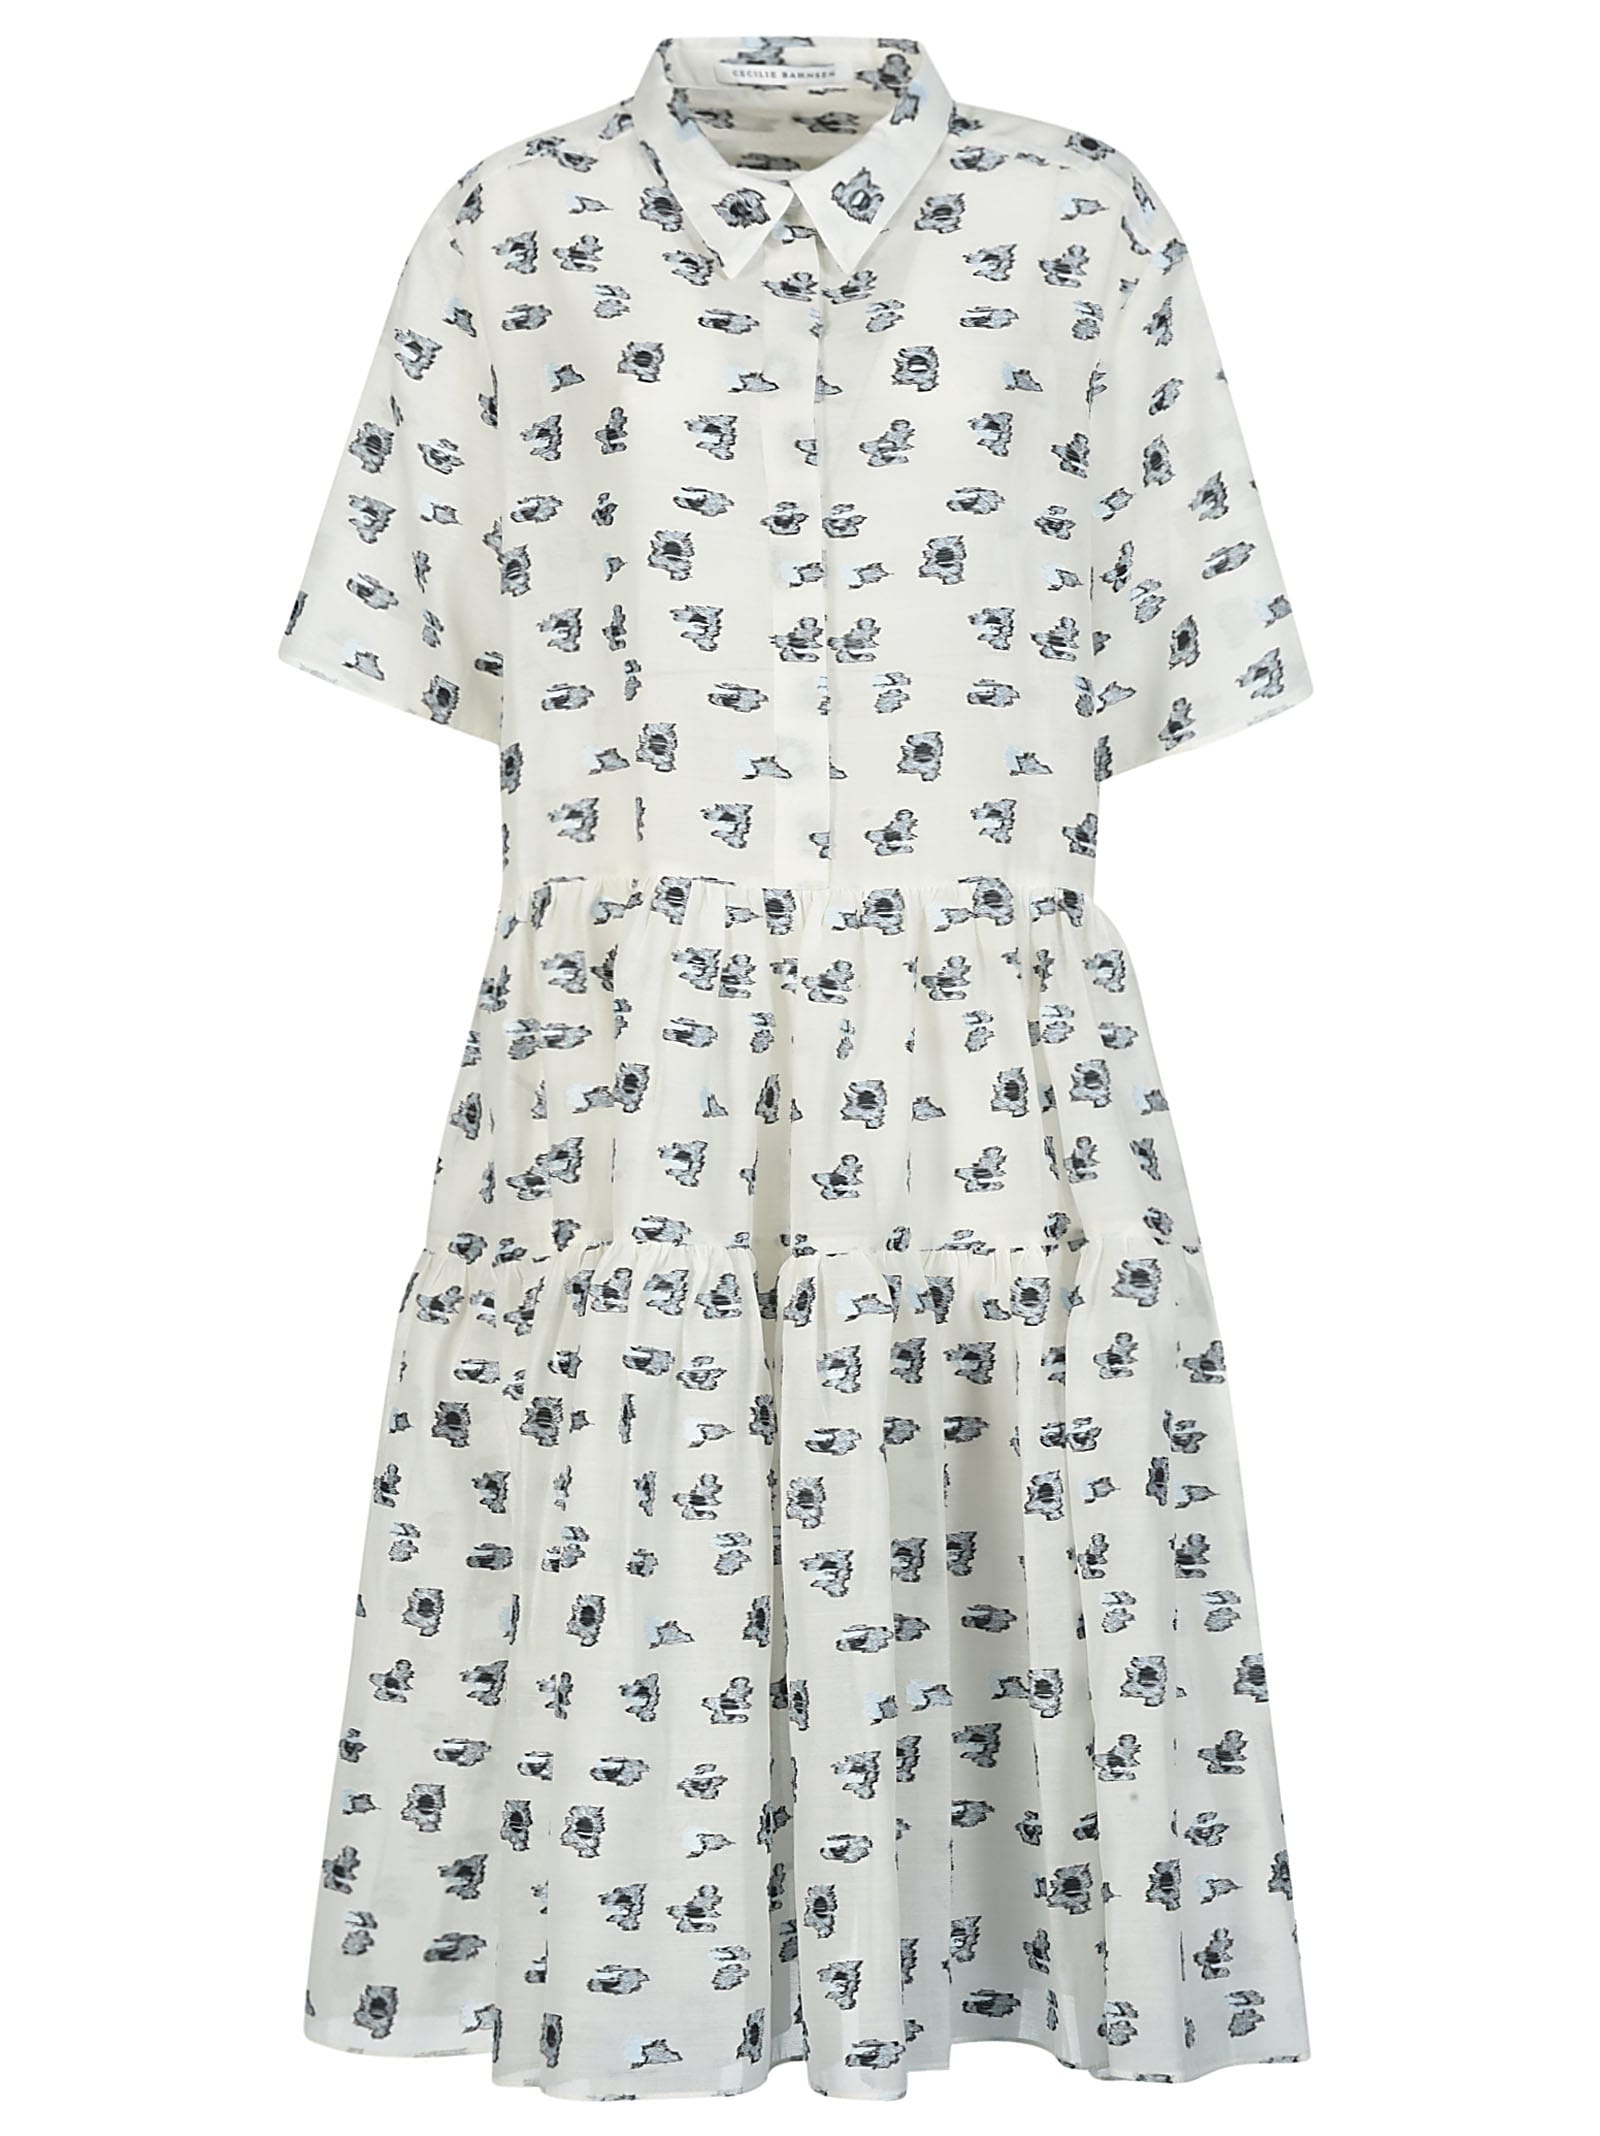 Buy Cecilie Bahnsen Short-sleeve Motif Print Dress online, shop Cecilie Bahnsen with free shipping